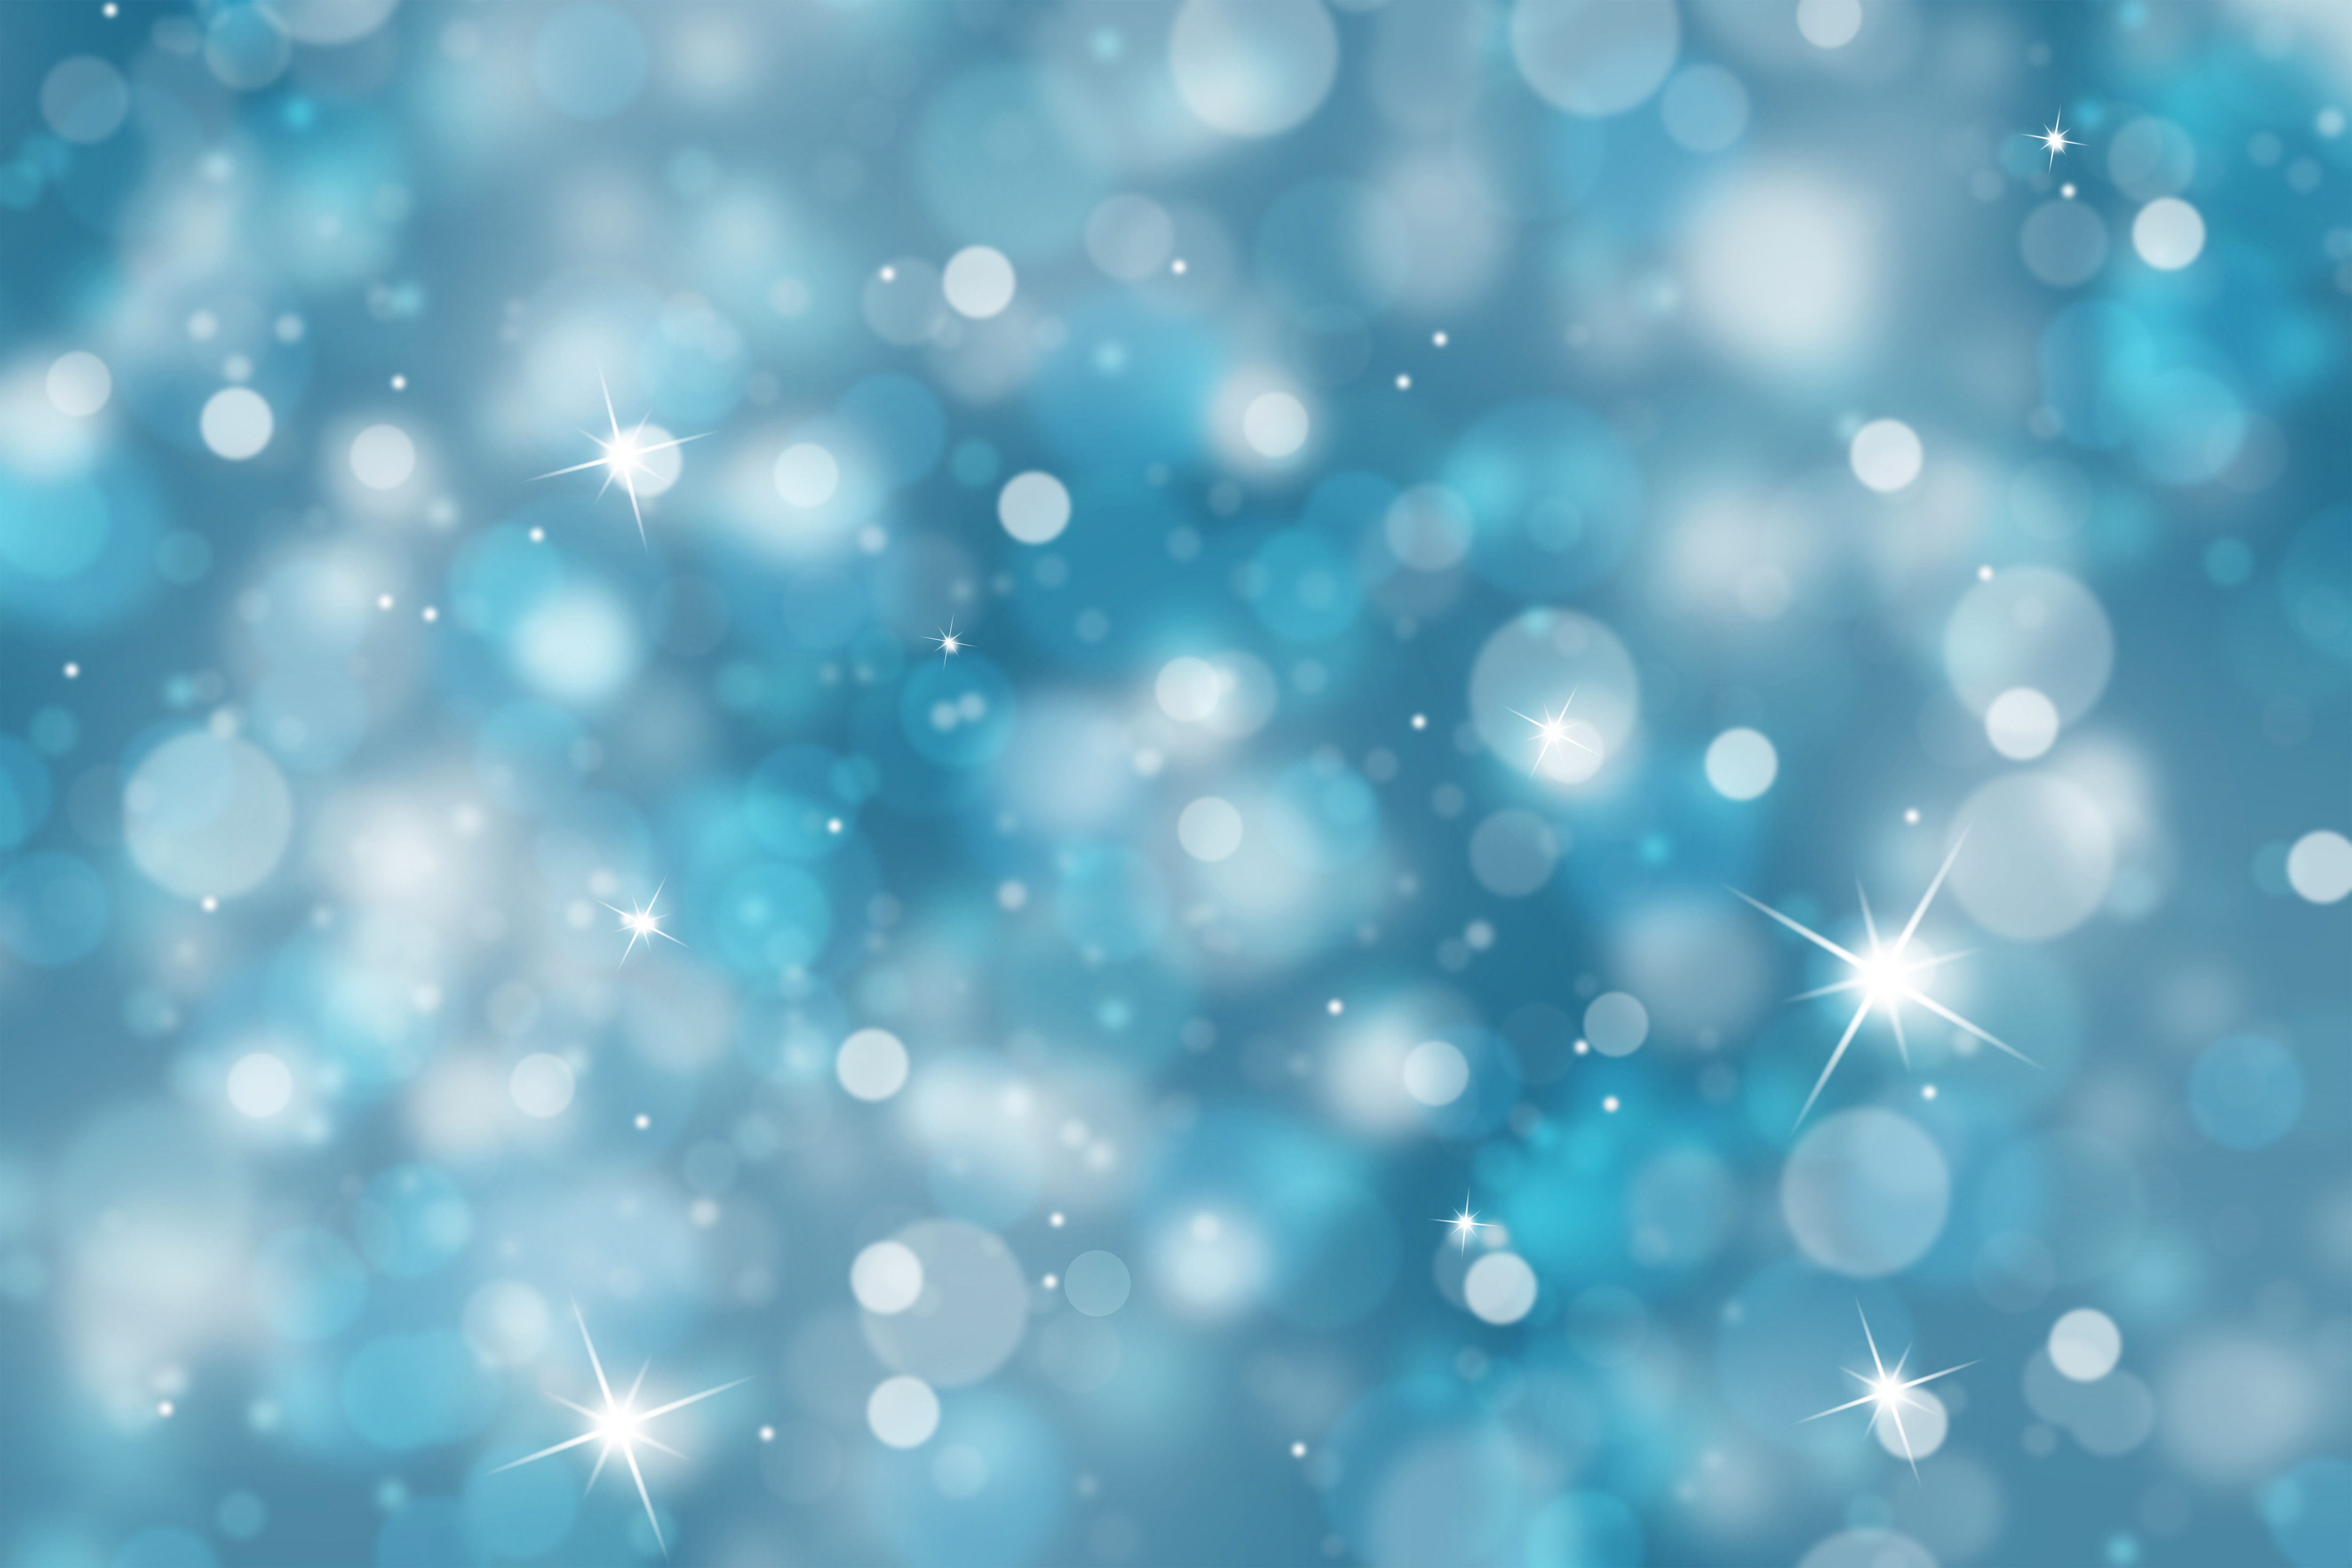 Shining background clipart png freeuse library Blue Shining Background | Gallery Yopriceville - High ... png freeuse library